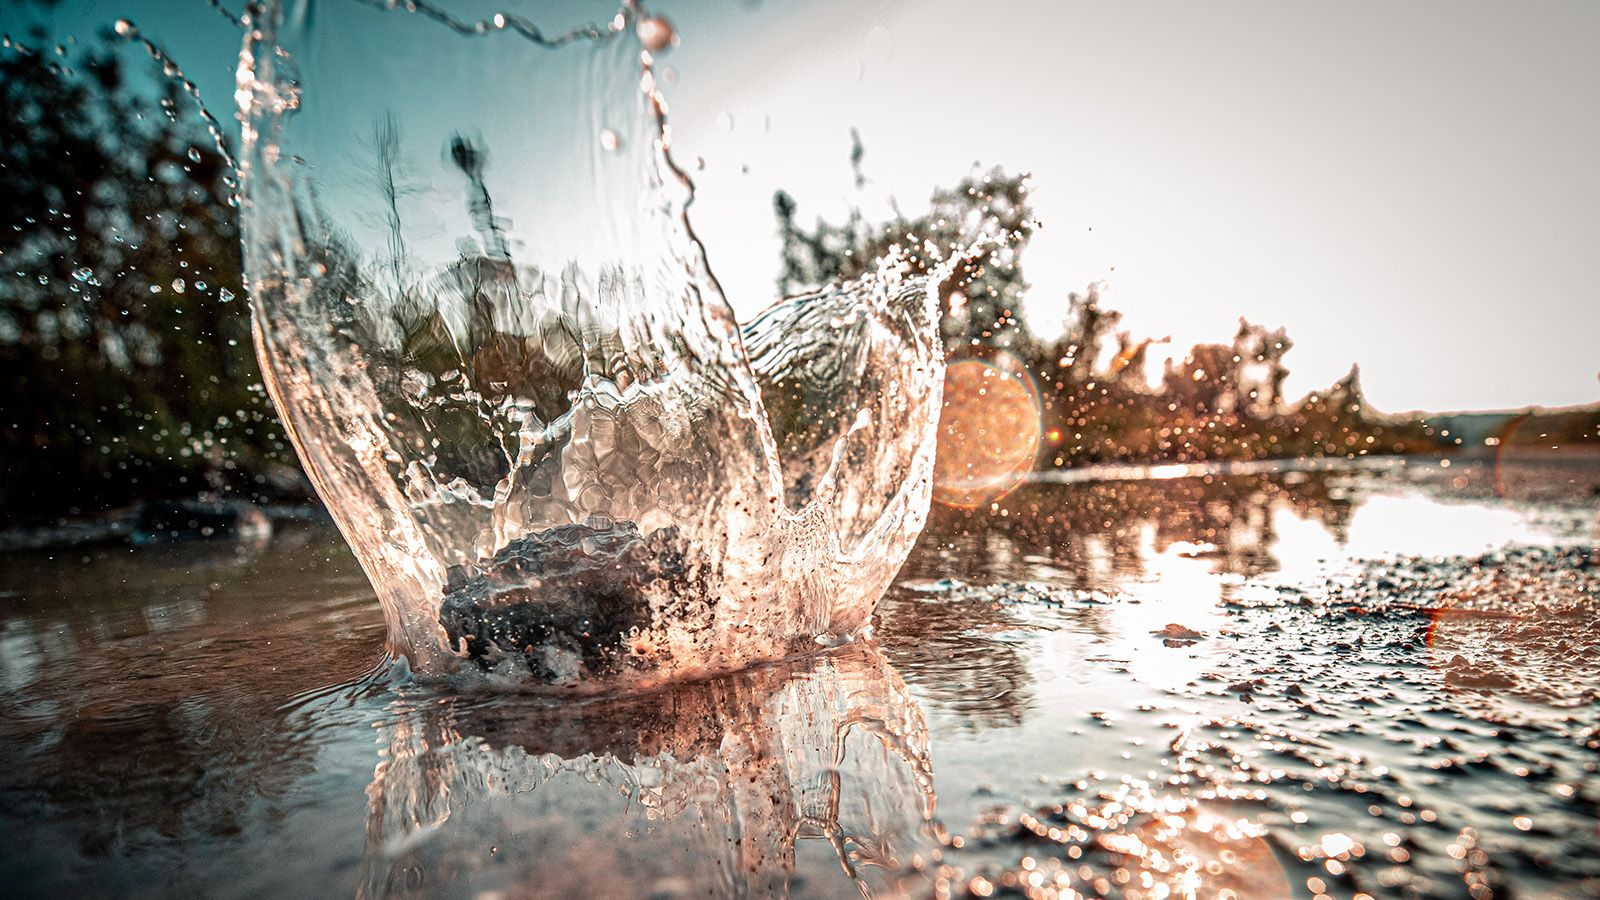 Water splash in a shallow river banner image